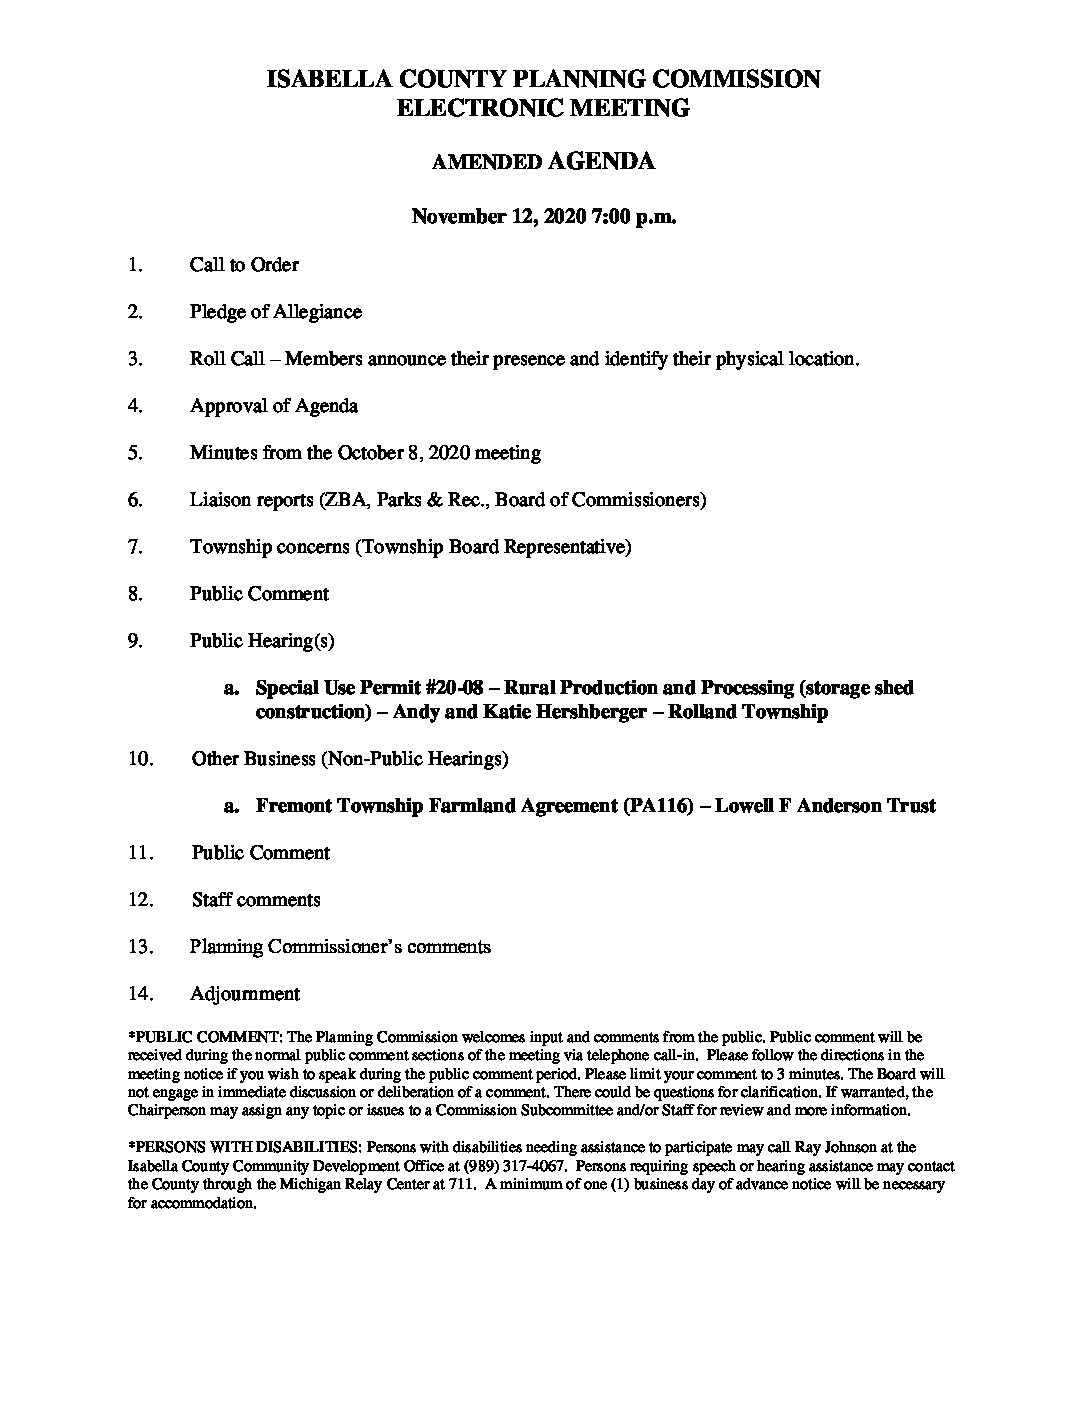 preview image of first page November 12, 2020 Amended Agenda